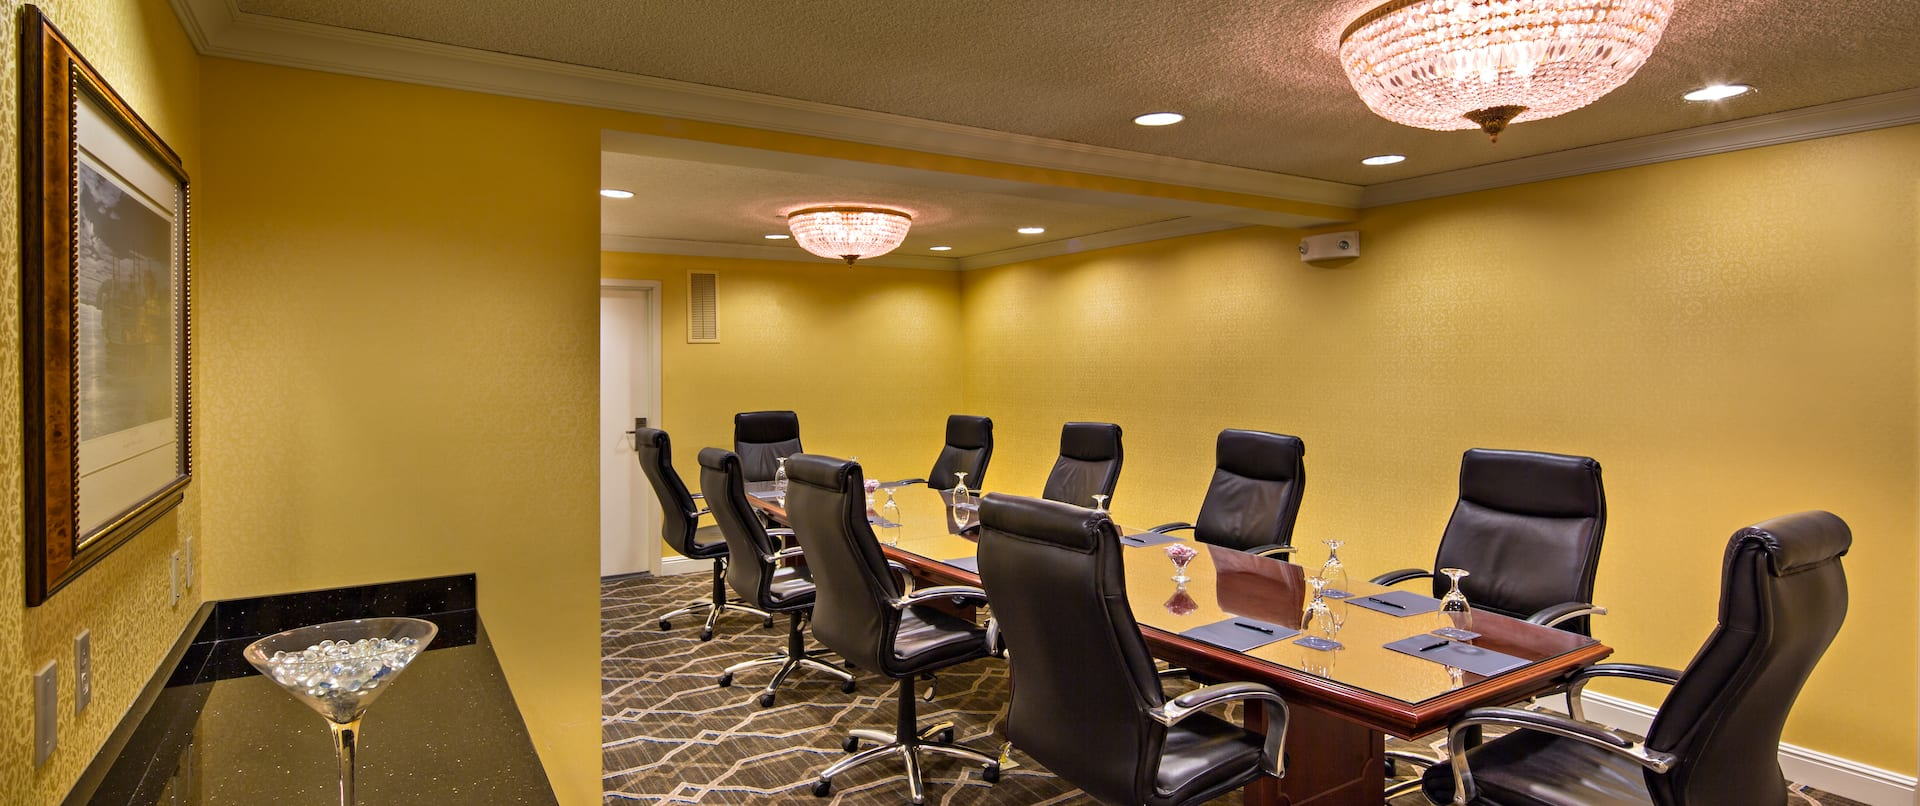 Boardroom With Chairs